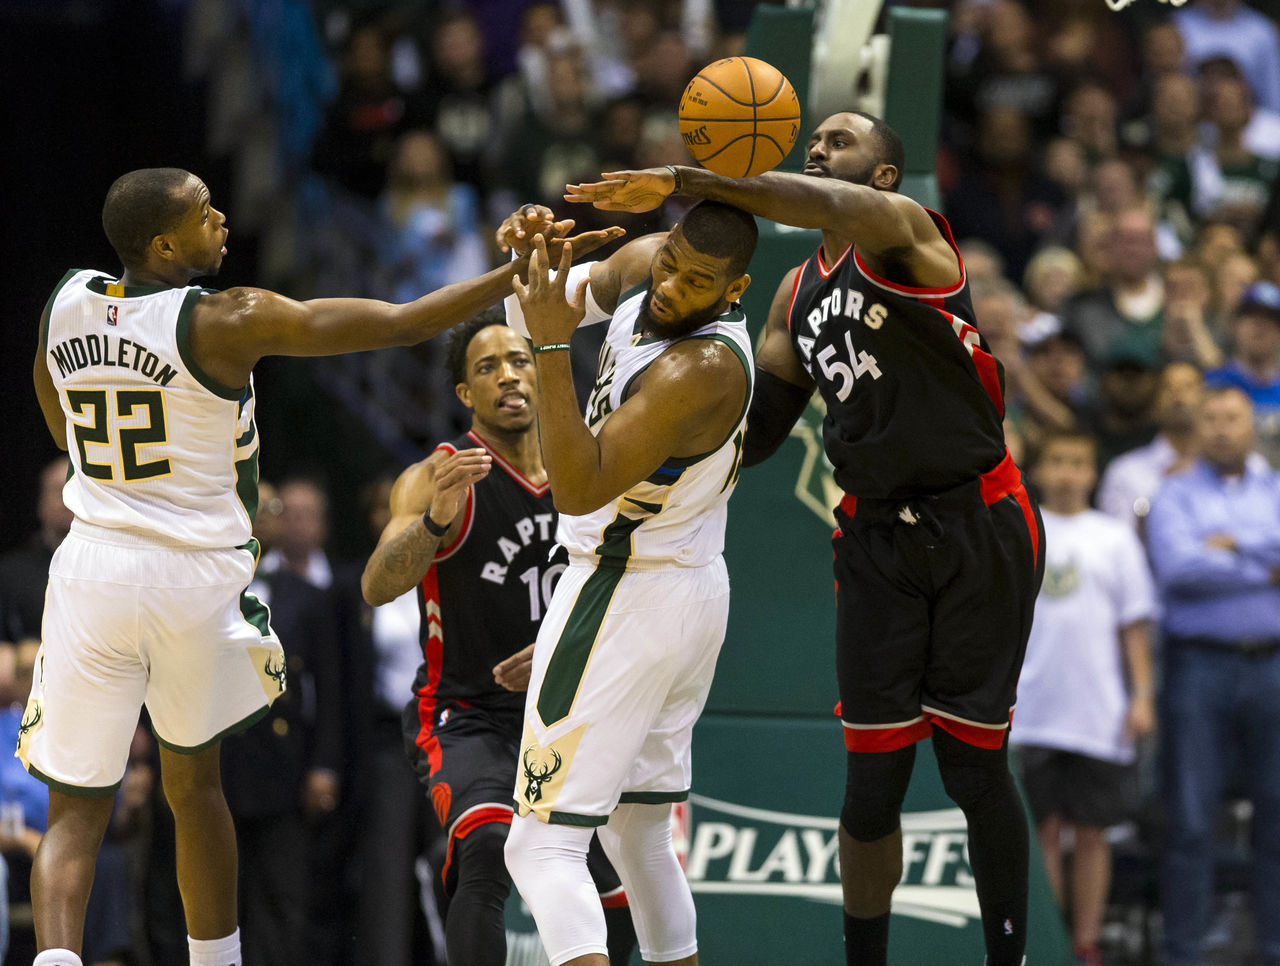 Cropped 2017 04 28t020731z 1129084025 nocid rtrmadp 3 nba playoffs toronto raptors at milwaukee bucks